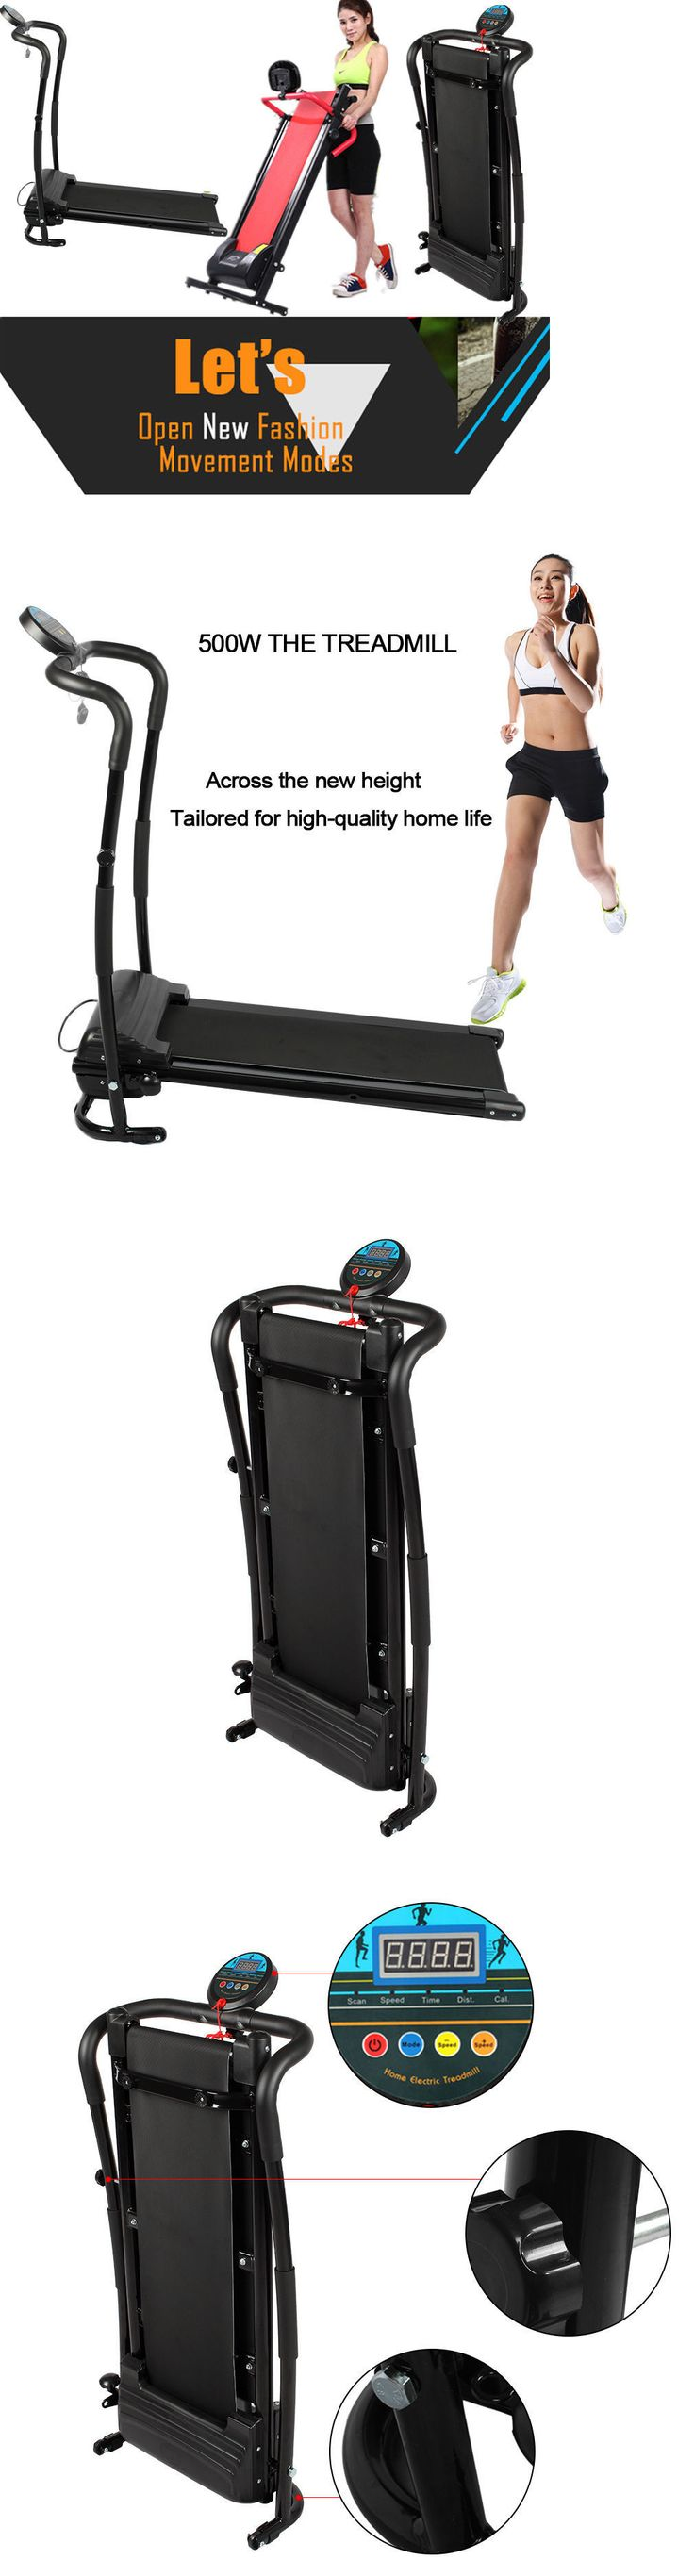 Other Fitness Equipment and Gear 28065: Electric Manual Motorized Treadmill Machine Folding Portable Running Gym Fitness -> BUY IT NOW ONLY: $128.95 on eBay!